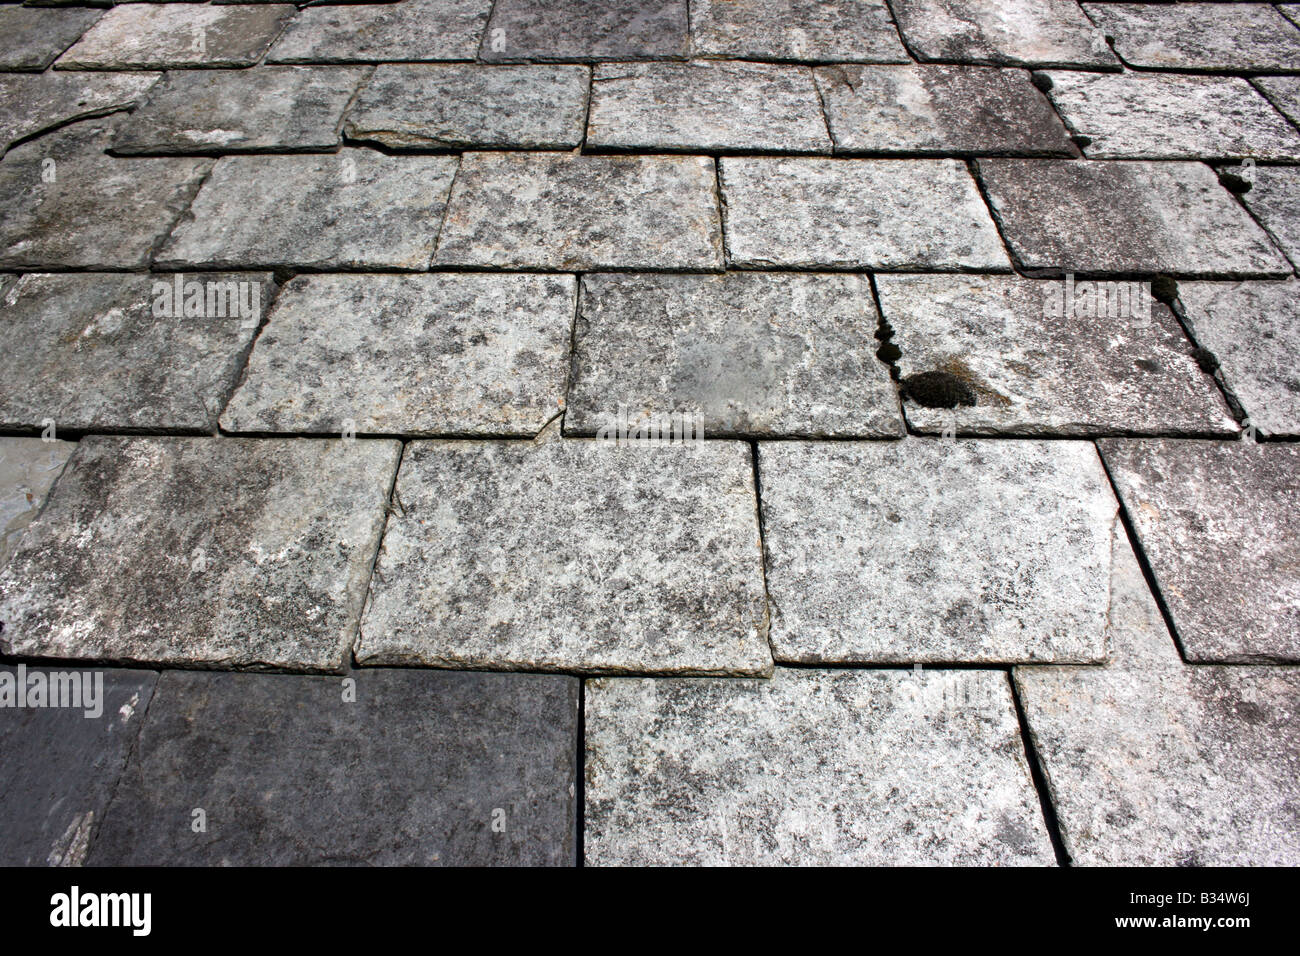 Slate Tile Roof Stock Photos Slate Tile Roof Stock Images Alamy